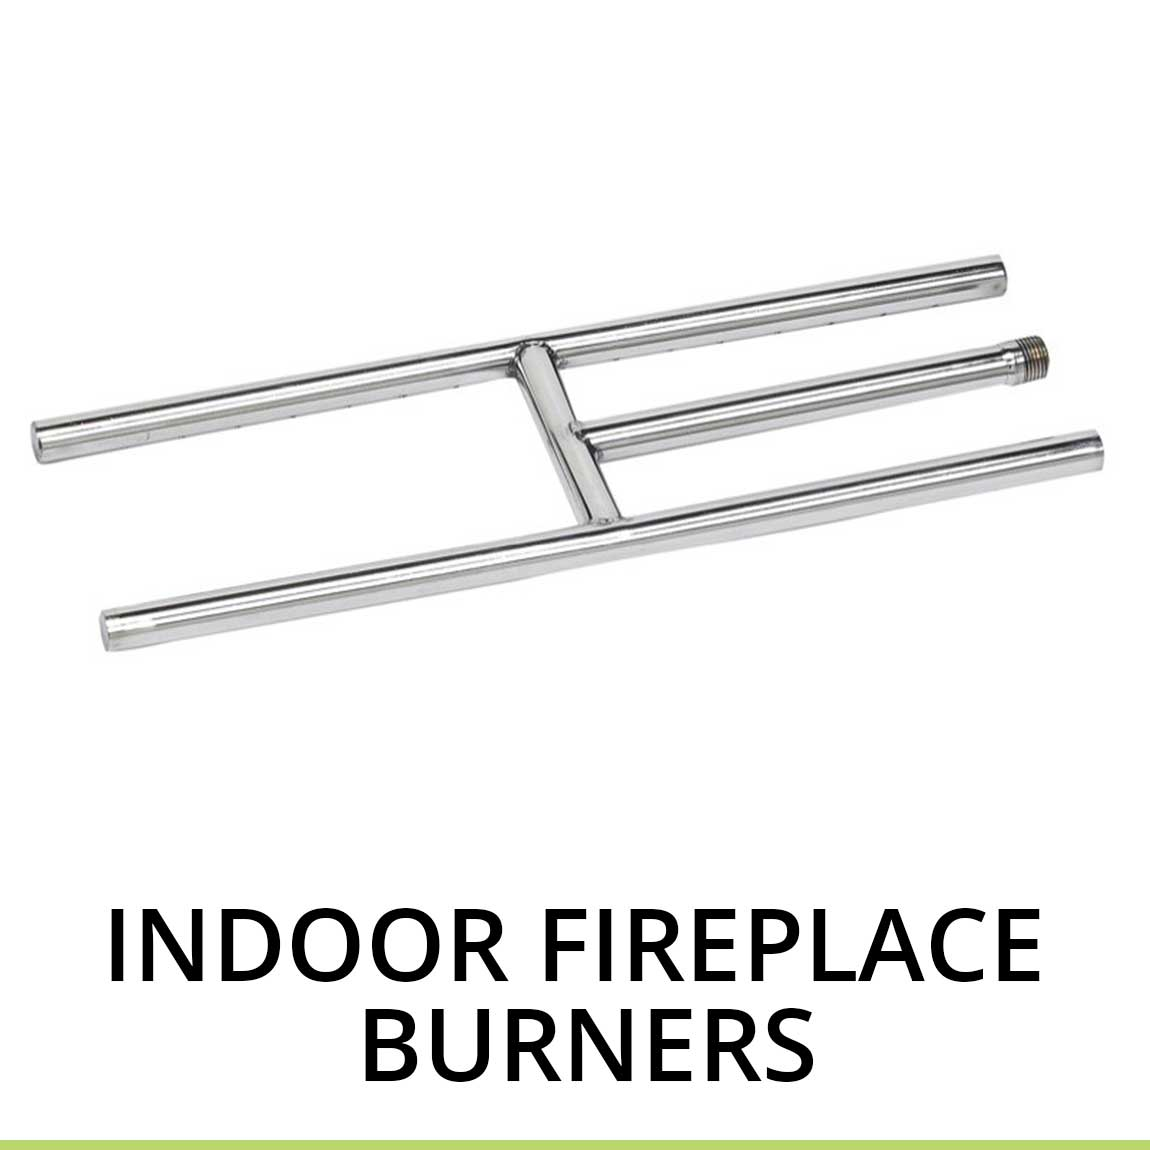 Indoor Fireplace Burners